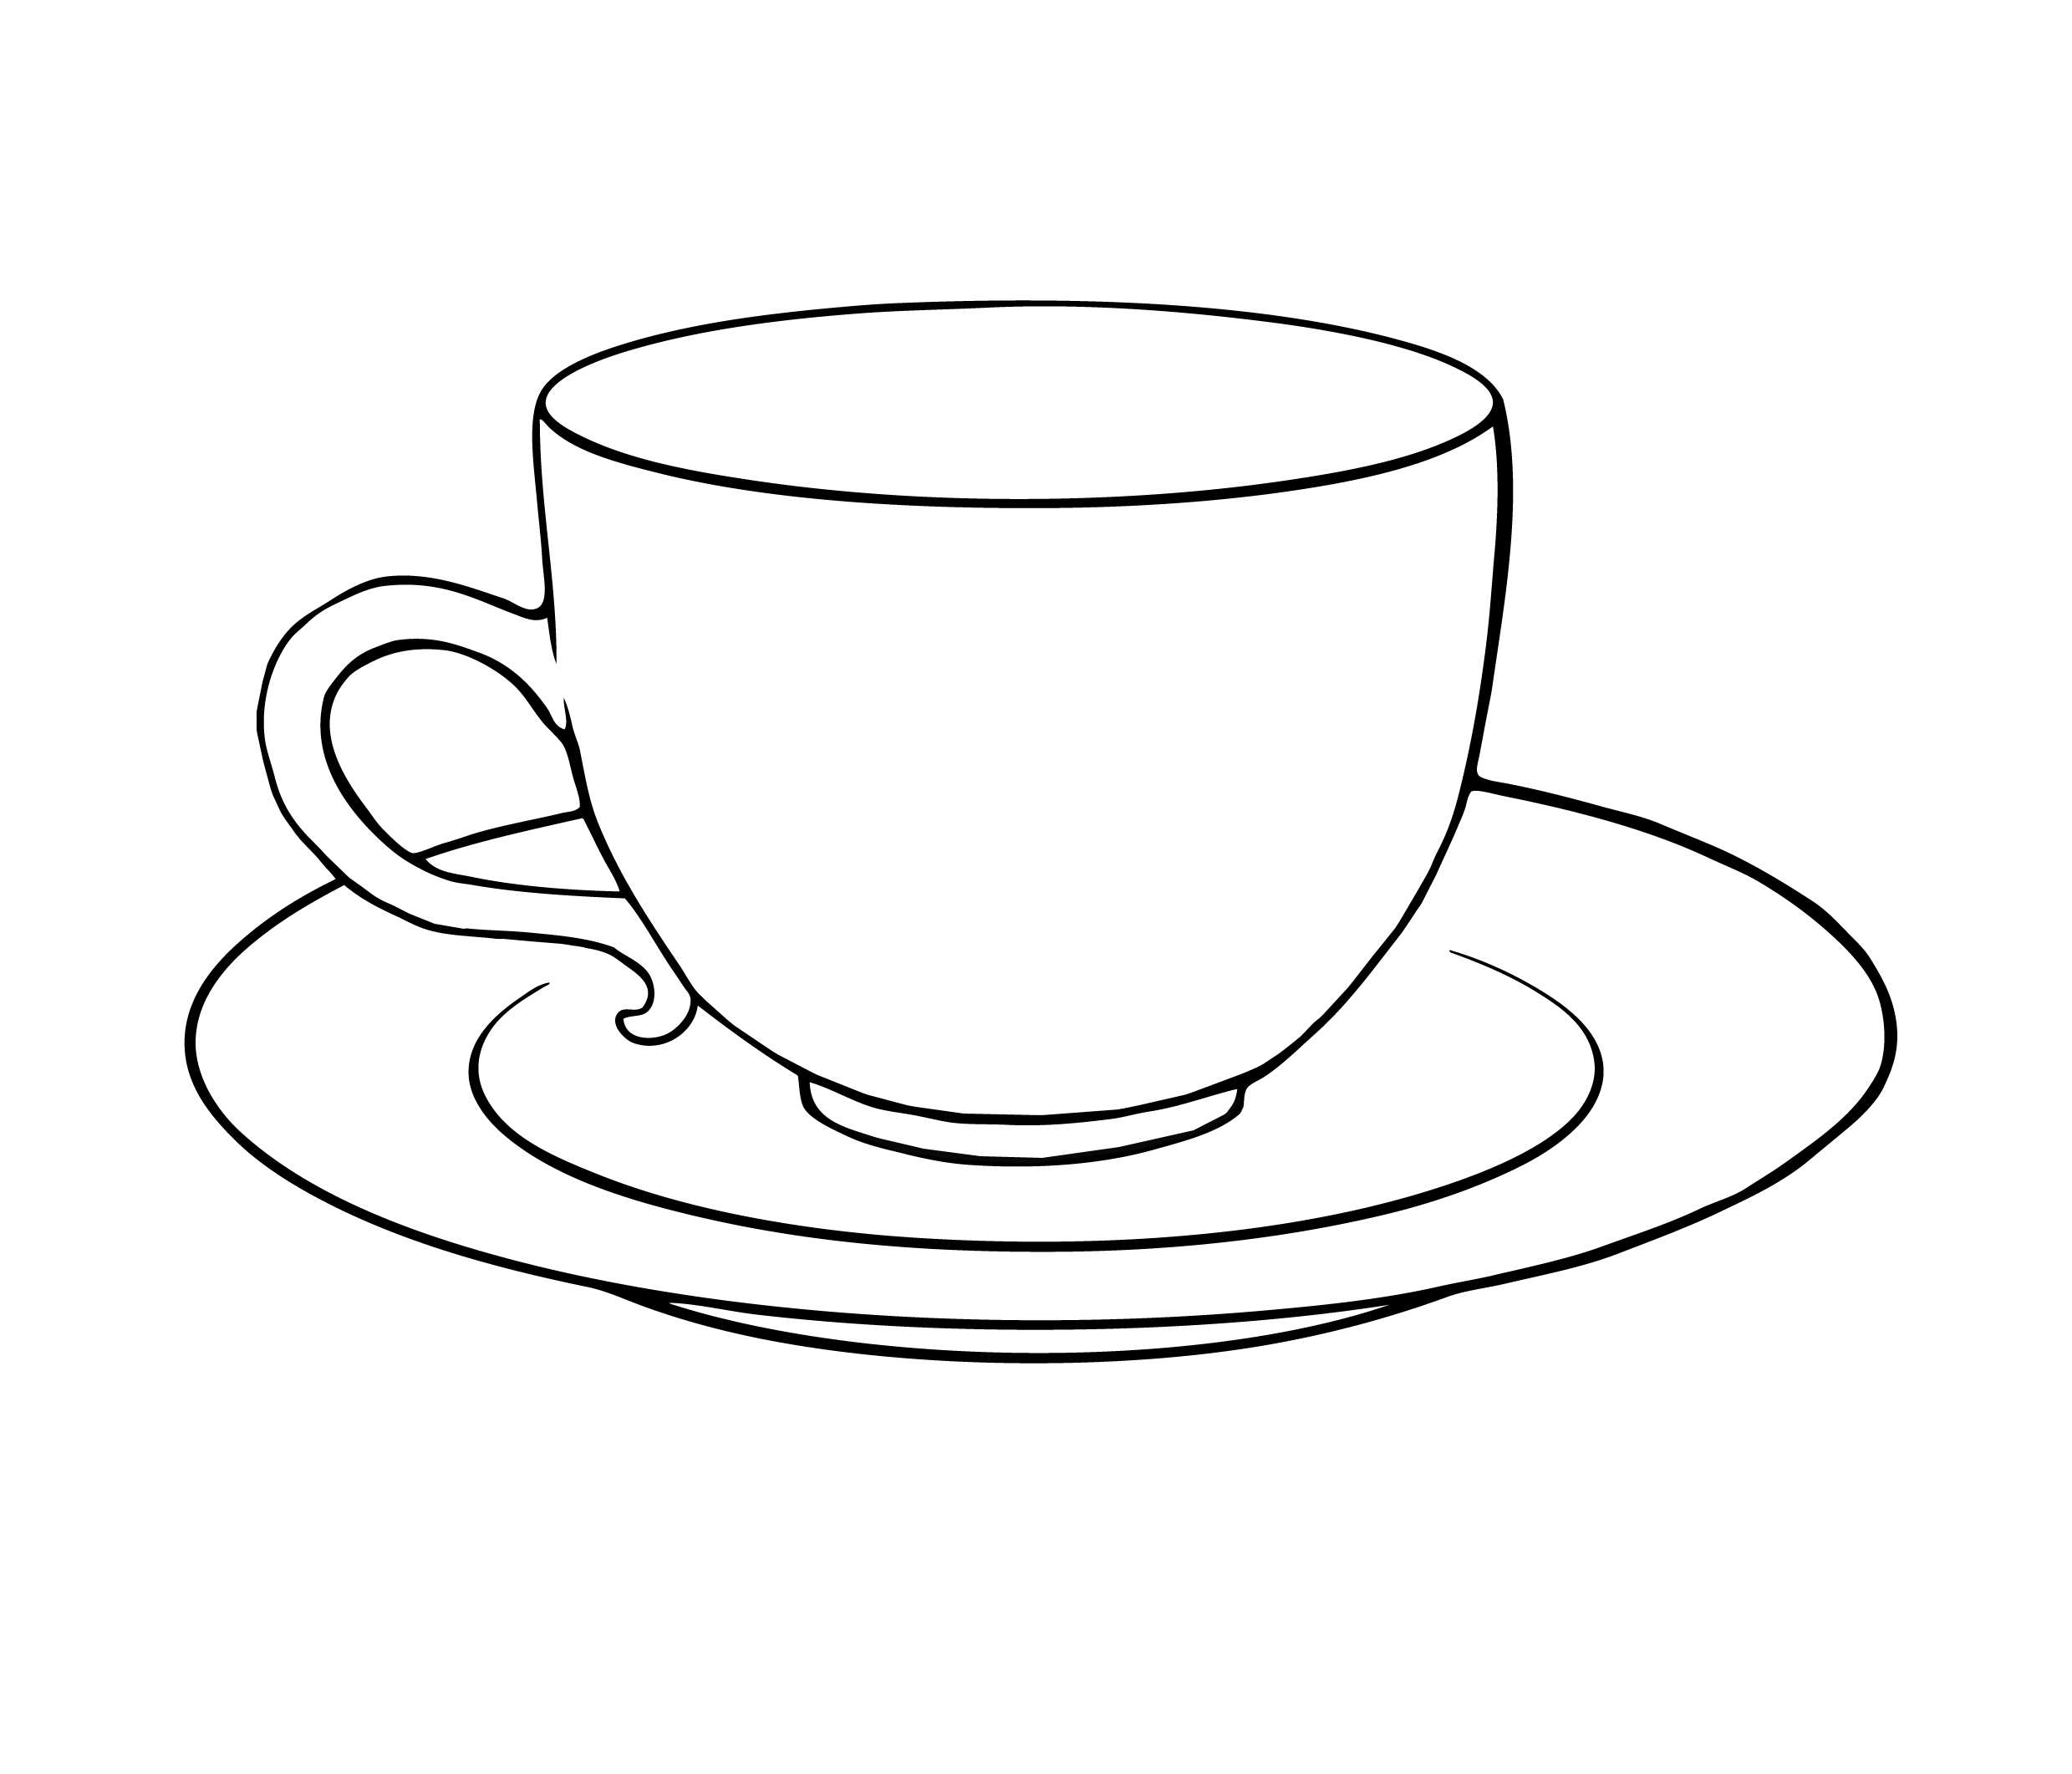 Teacup clipart. Awesome tea cup design